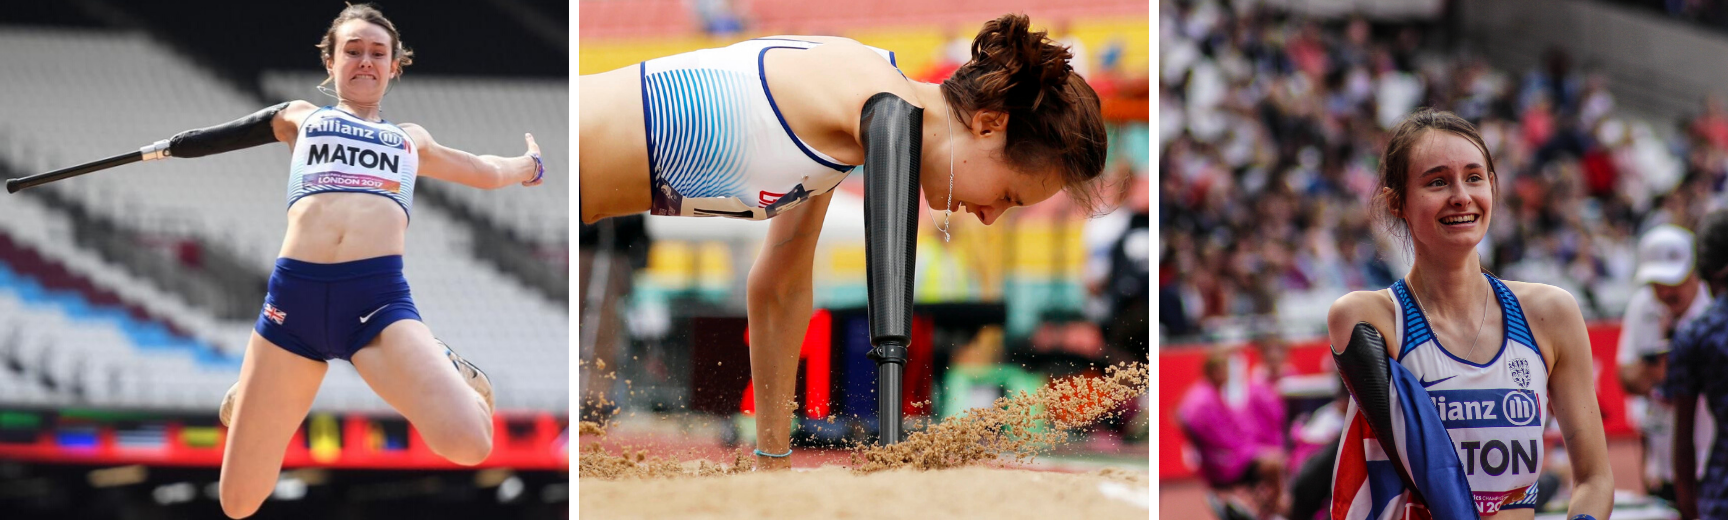 Two images of Polly competing in long jump and an image of her with a Union Jack flag